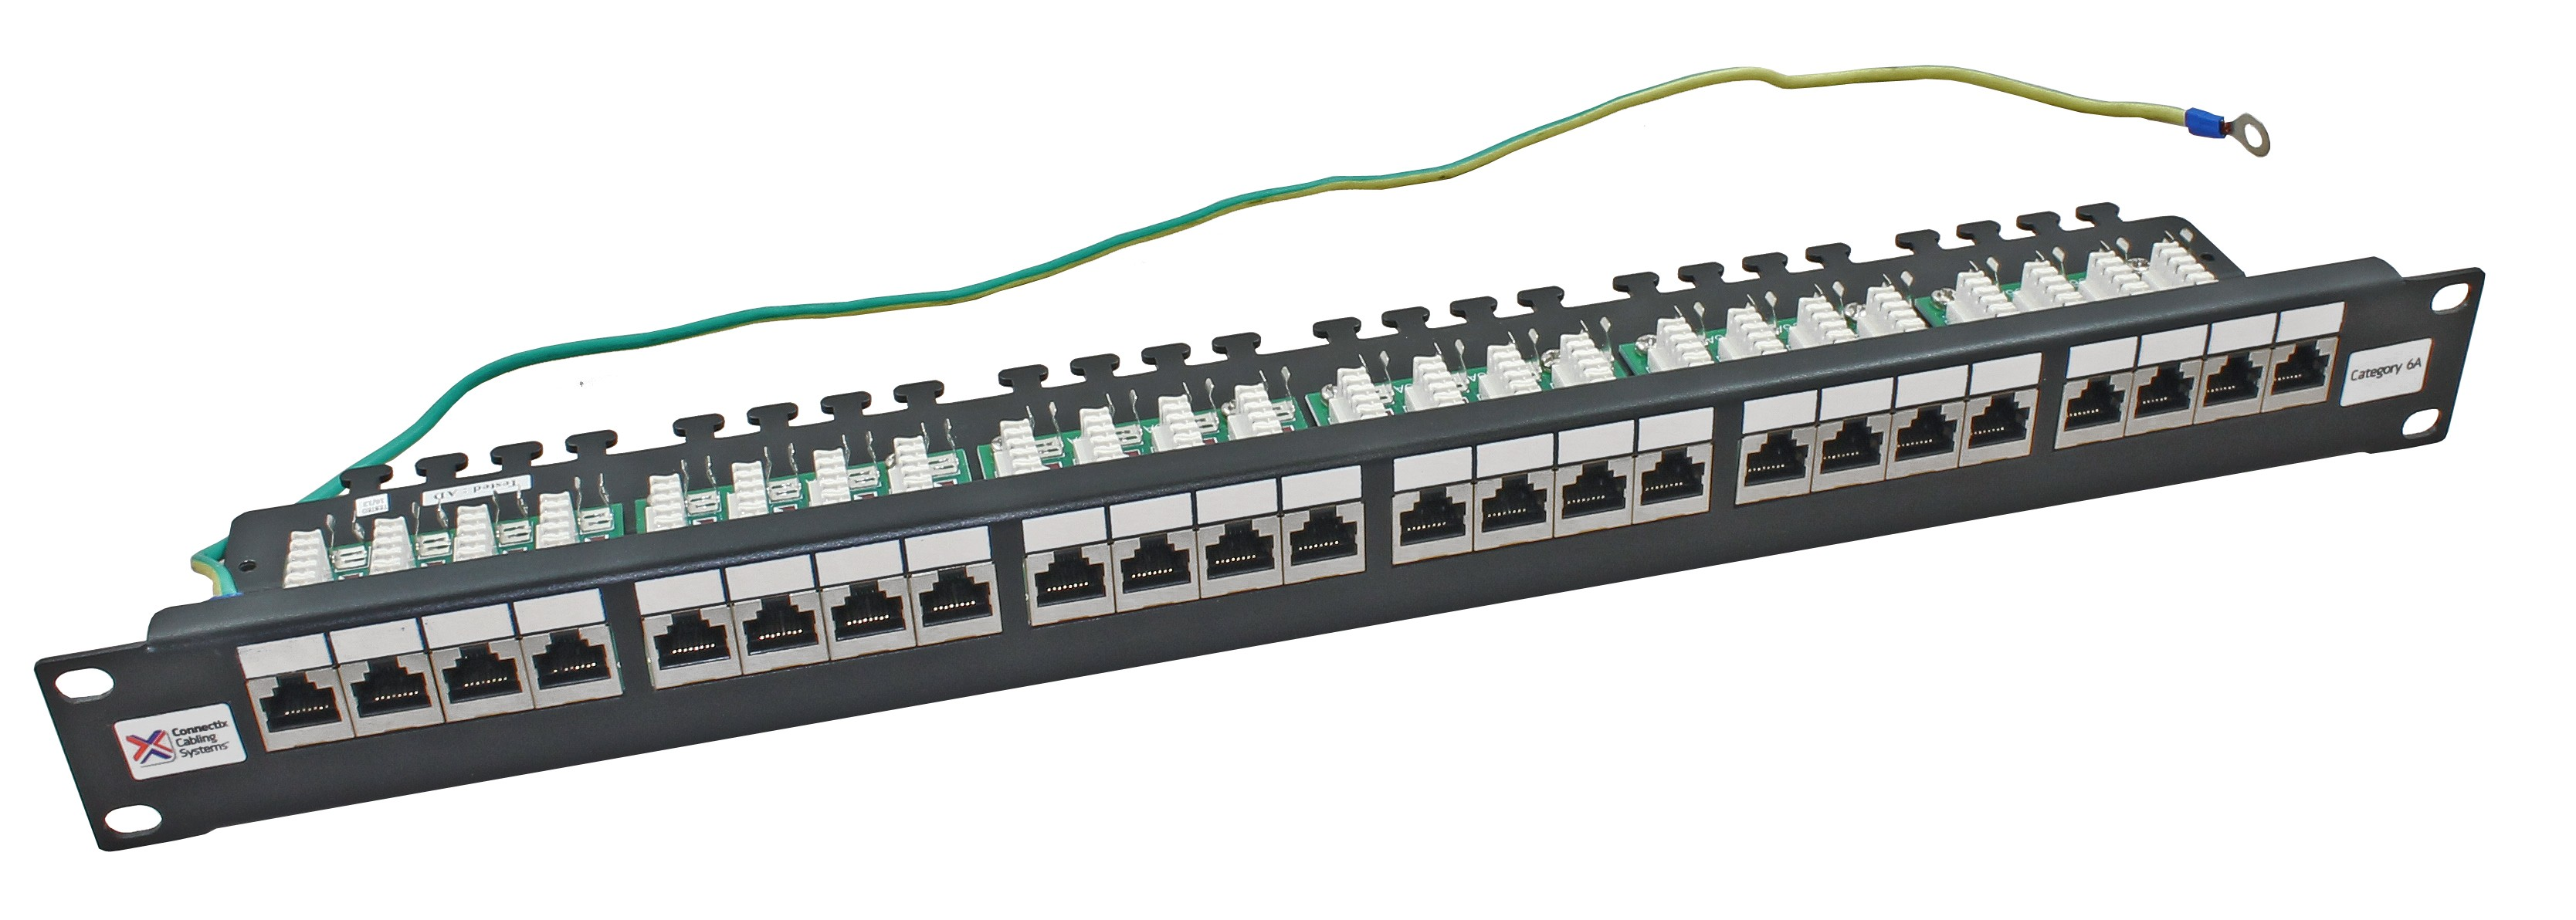 Patch Panels Structured Networking From Cable Monkey Rj45 Panel Wiring